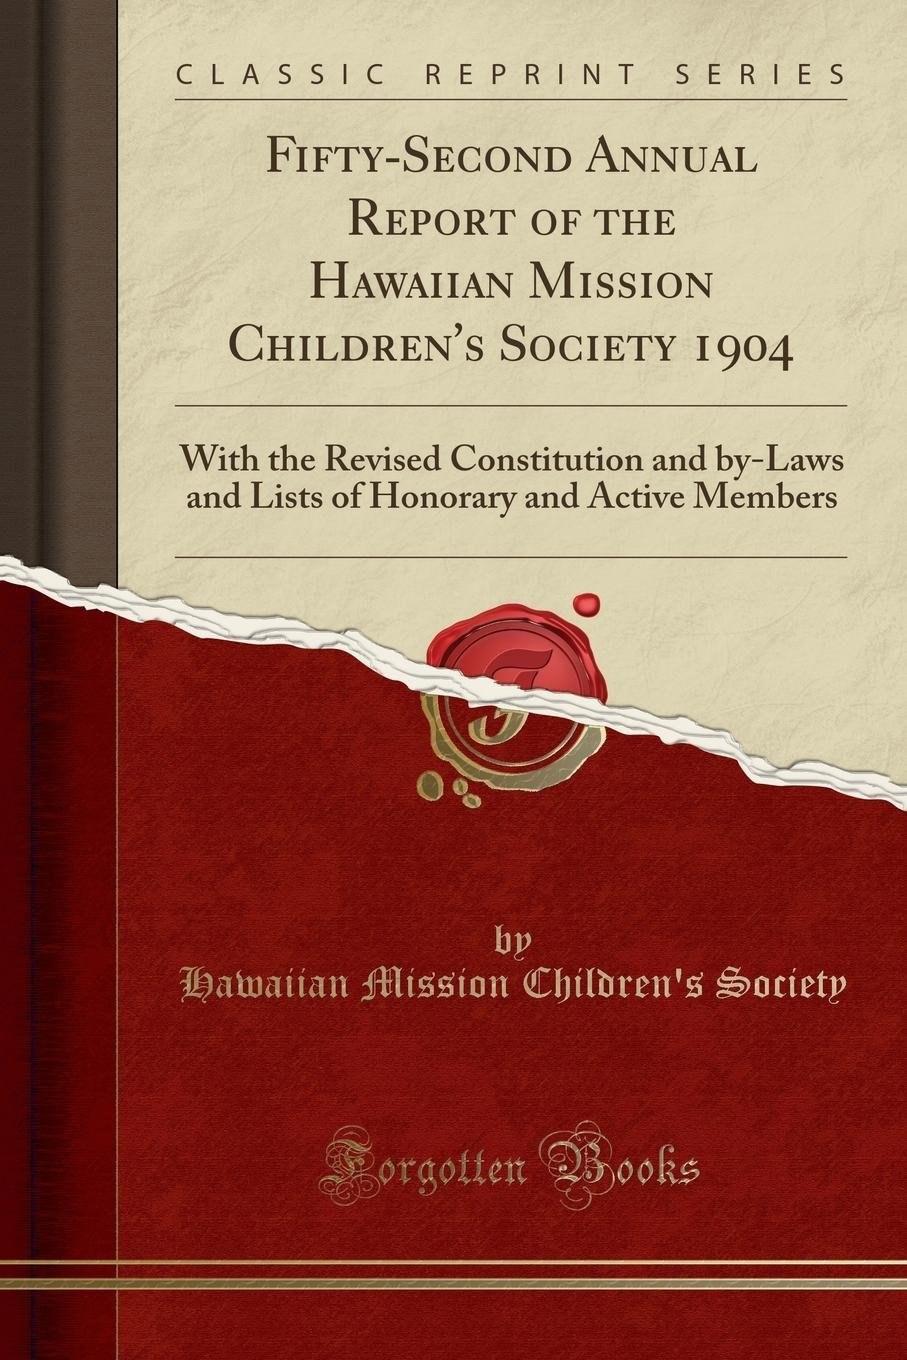 Download Fifty-Second Annual Report of the Hawaiian Mission Children's Society 1904: With the Revised Constitution and by-Laws and Lists of Honorary and Active Members (Classic Reprint) pdf epub